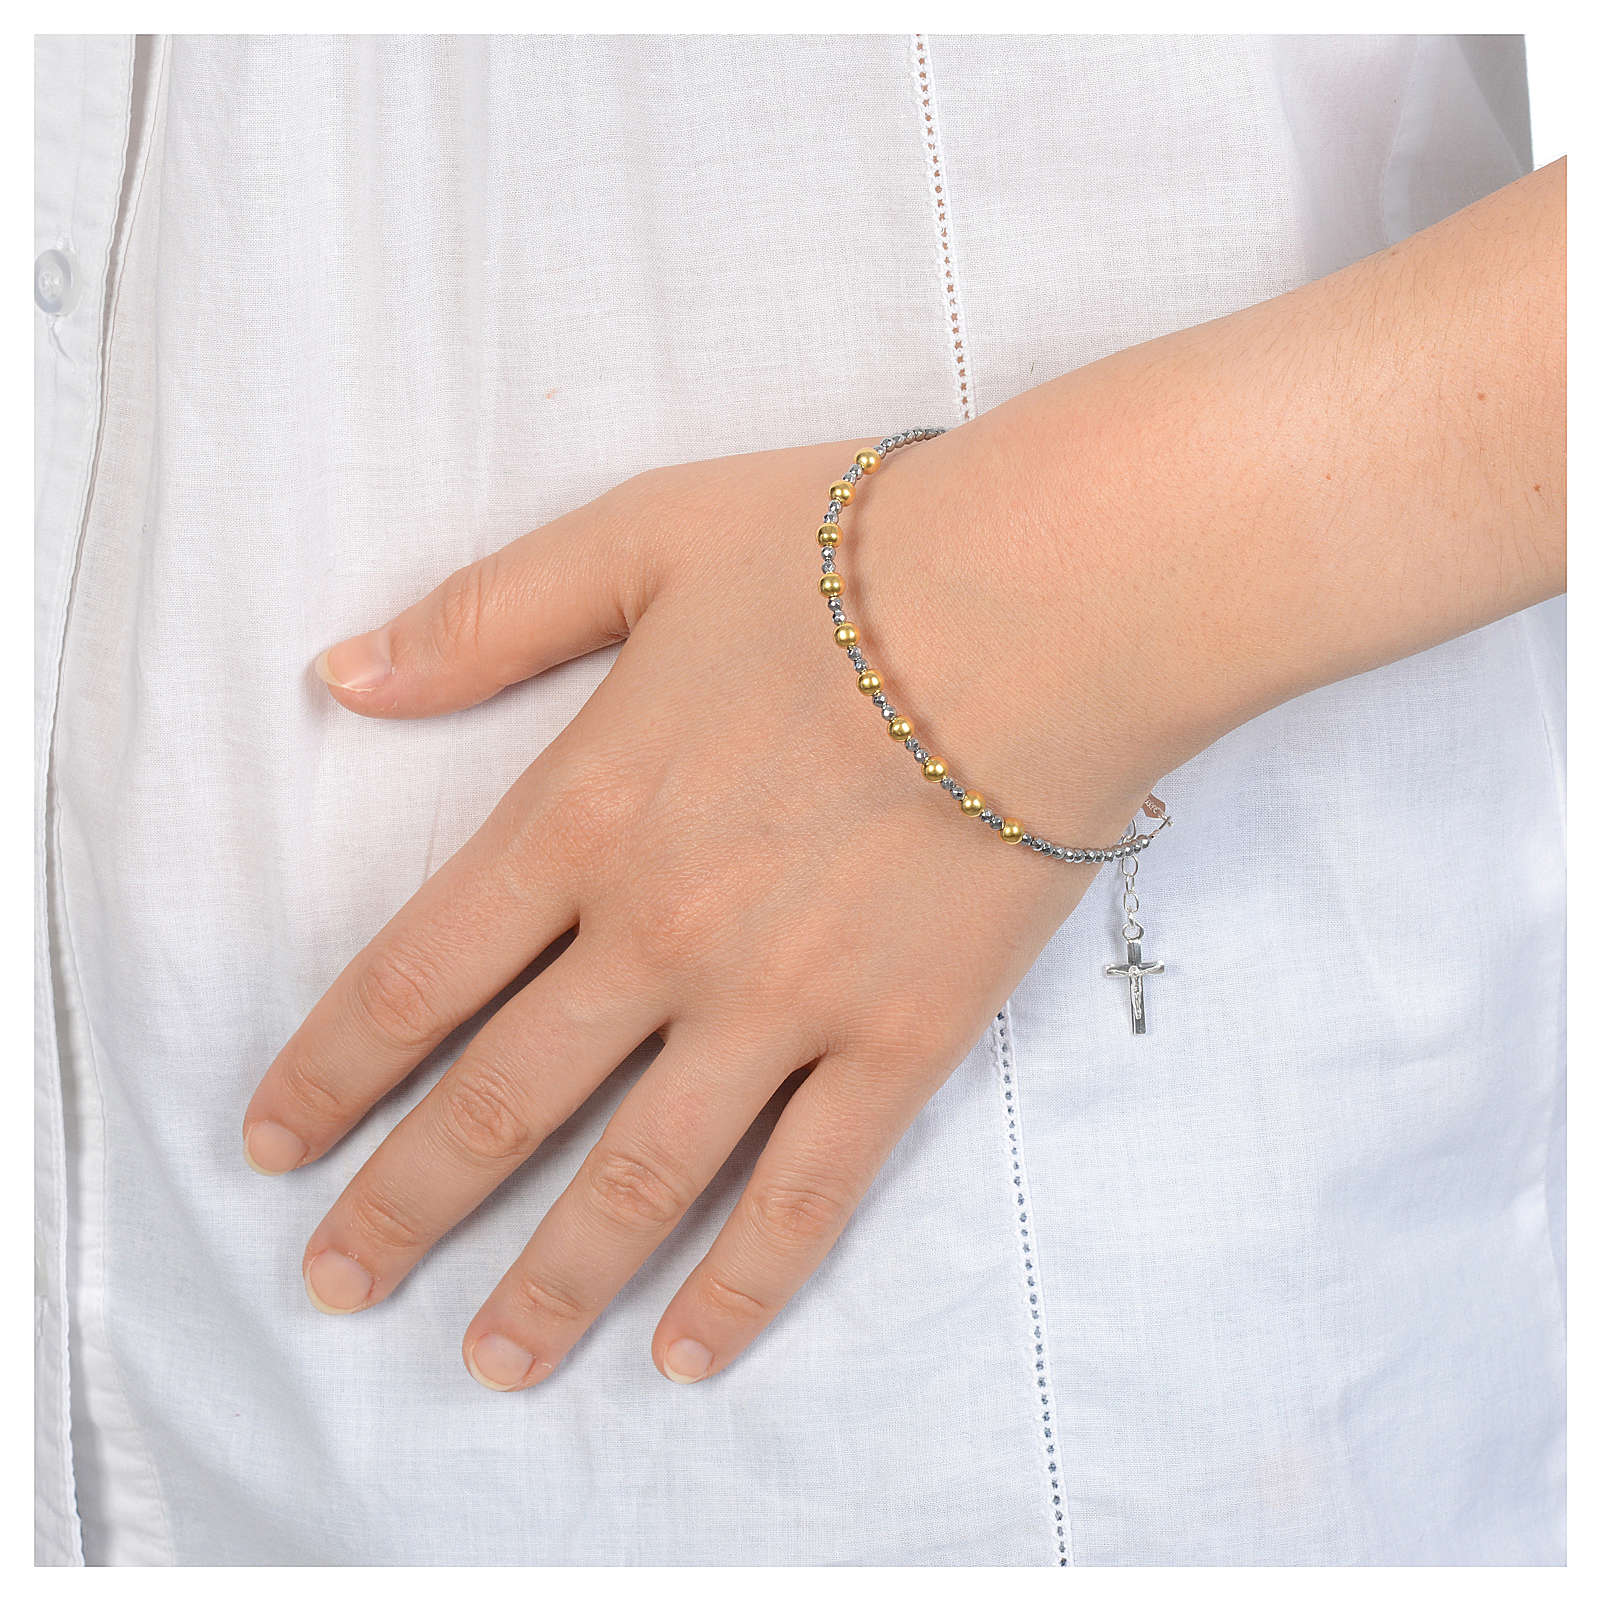 Bracelet in 925 sterling silver with smooth silver grains 4